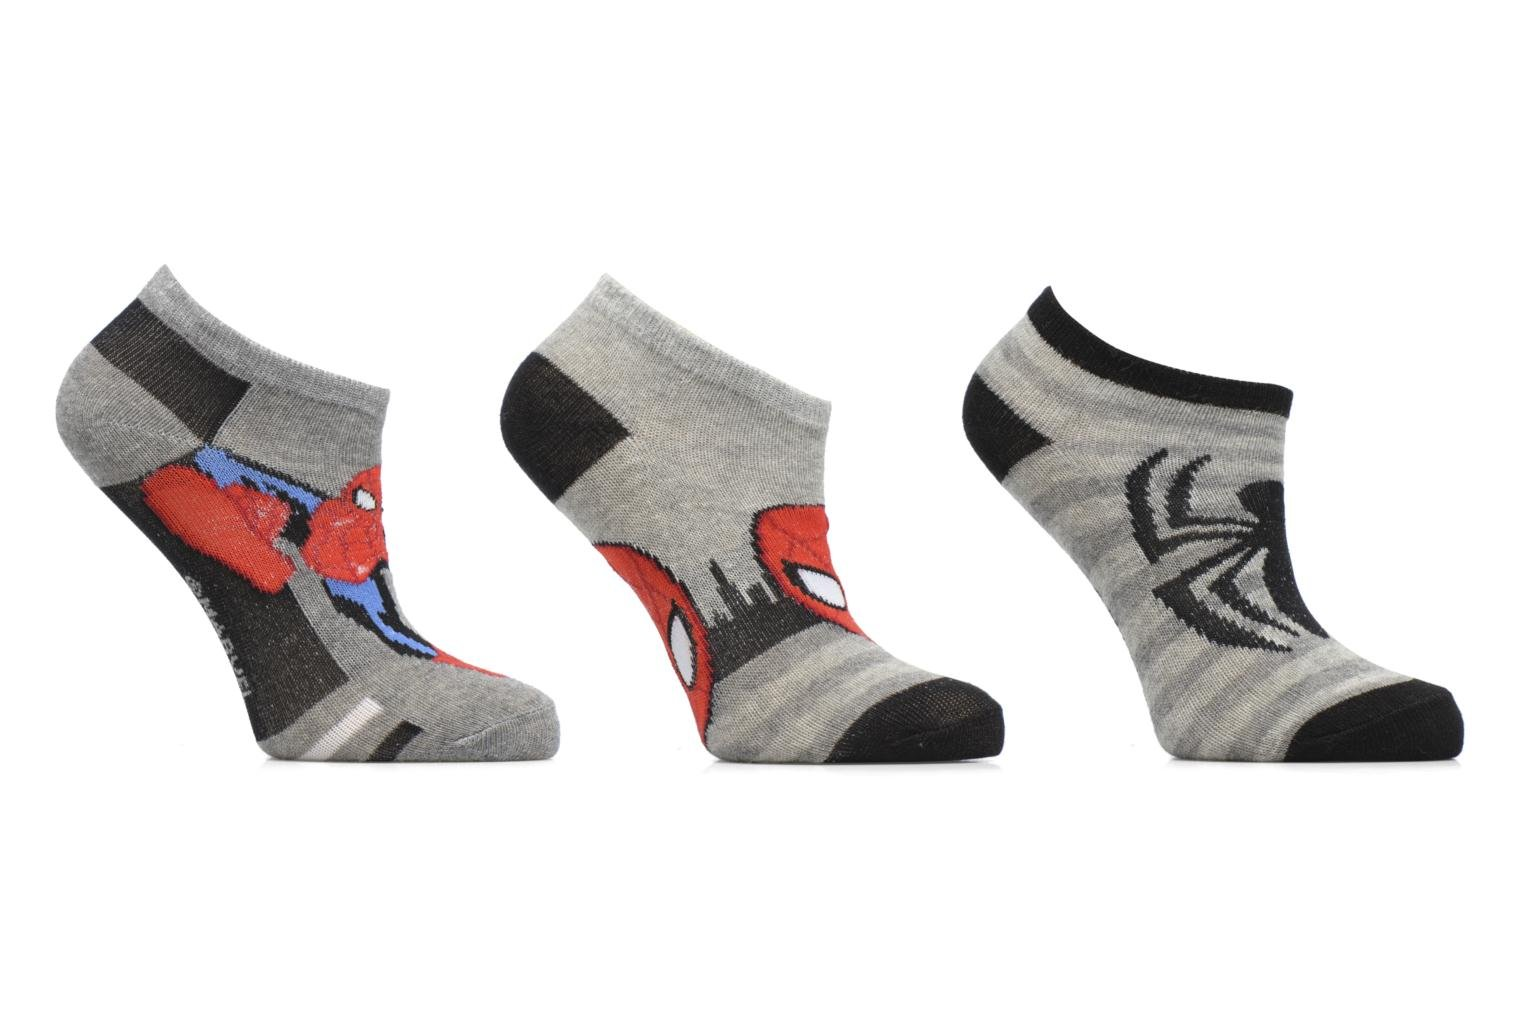 Sokken en panty's Disney Chaussettes Basses Lot de 3 Spiderman Grijs detail